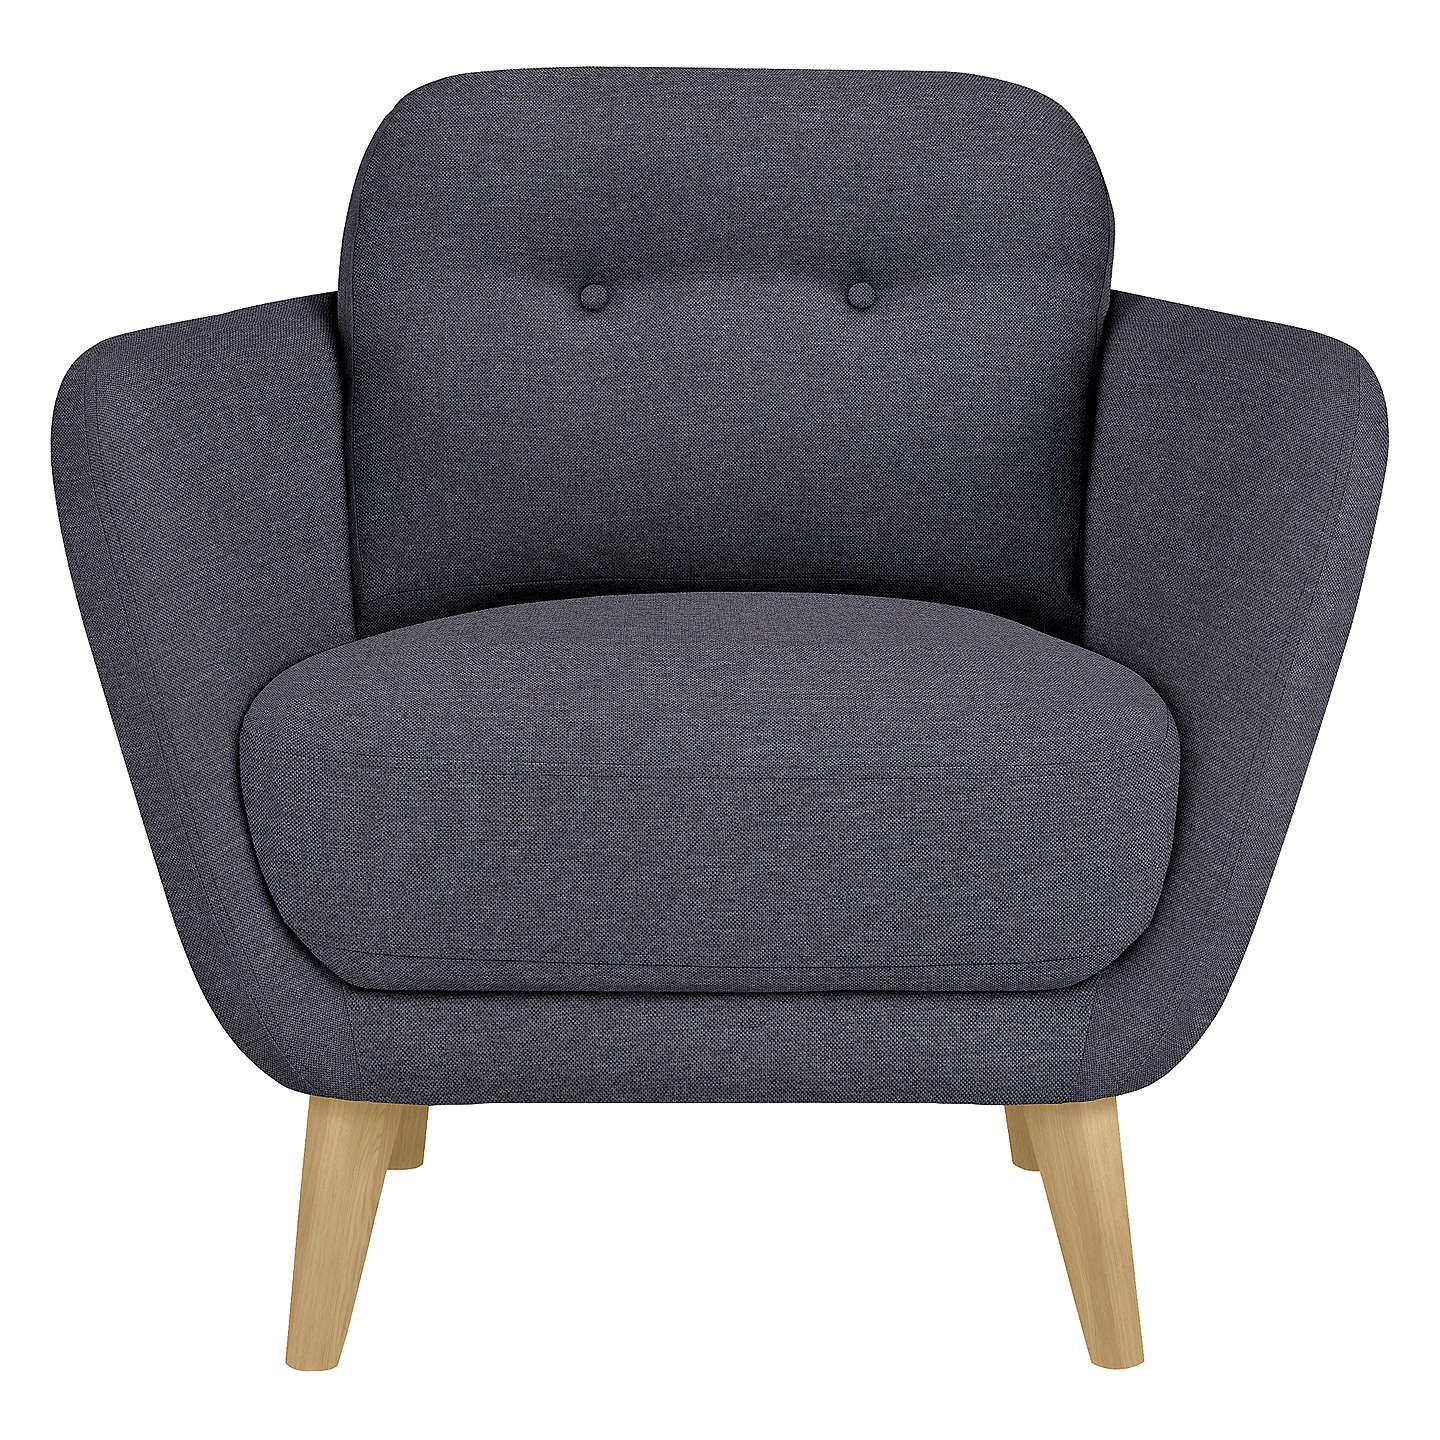 Buyhouse By John Lewis Arlo Armchair, Light Leg, Bevan Navy